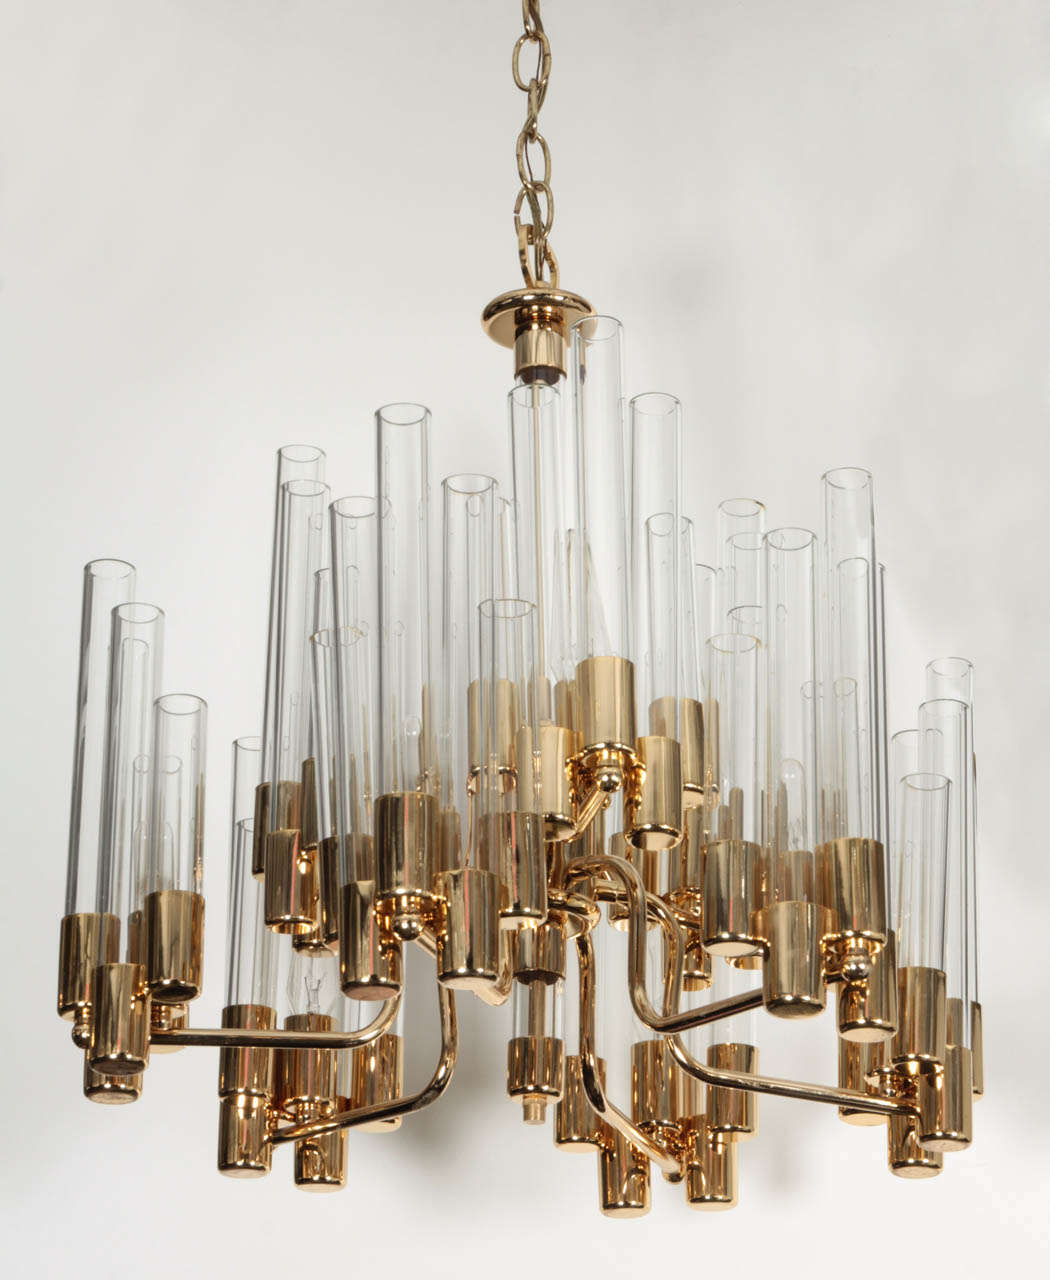 Fantastic Mid Century 2 tier brass and clear glass chandelier designed by Hans Agne Jakobsson. Bottom tier has 6 arms, top tier has 3.  Comes with 4ft of brass chain. Price reduced from 4800.